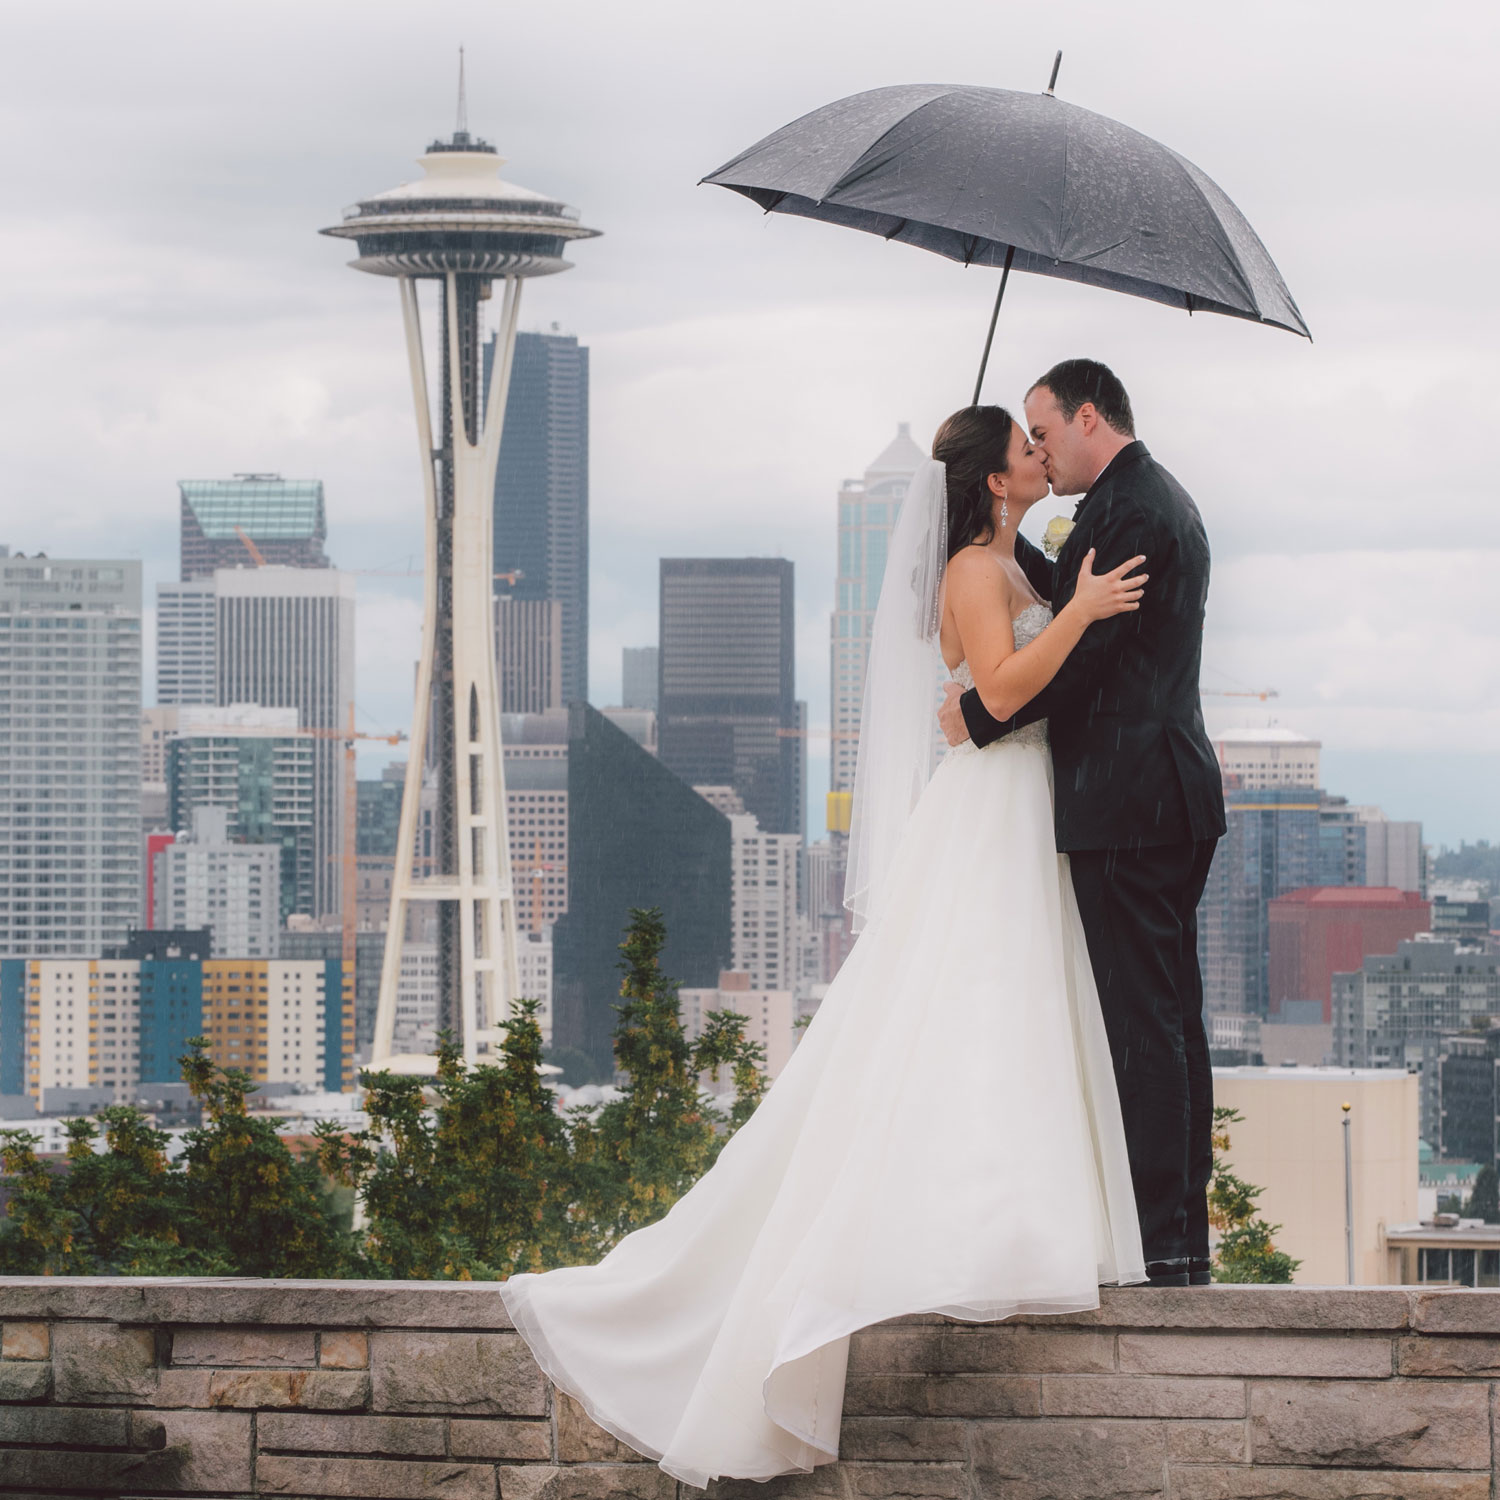 four-seasons-seattle-wedding-clane-gessel-photos-16